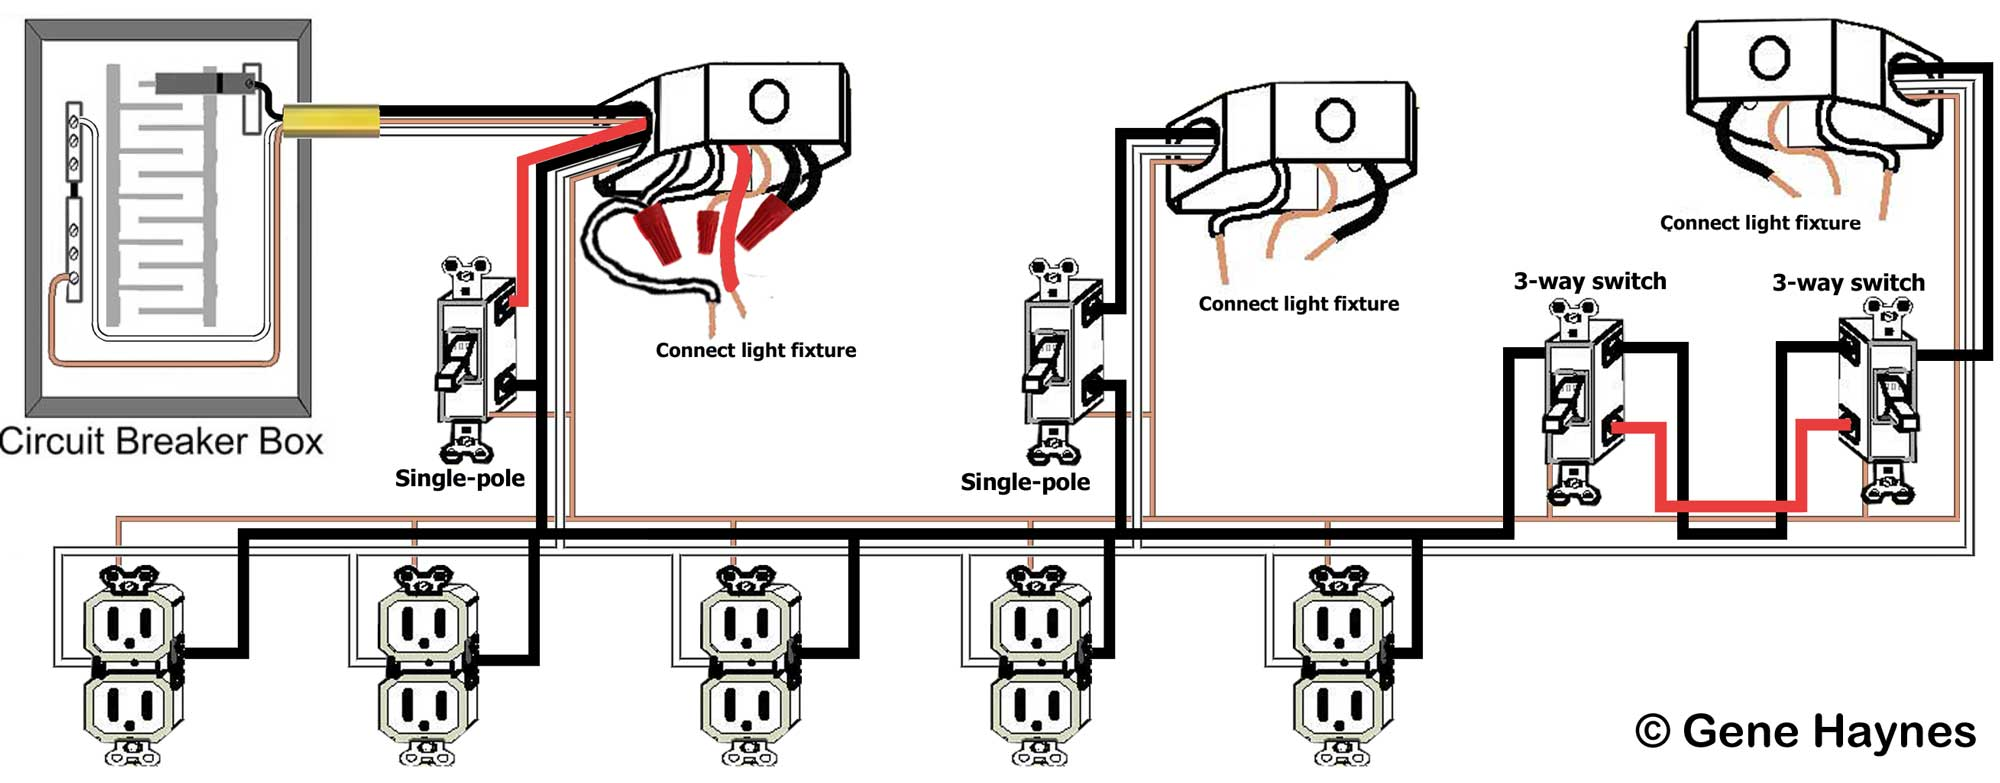 Basic House Wiring Pole Light Switch Diagram How To Wire 2 Separate Single Larger Image Typical 120 Volt Circuit